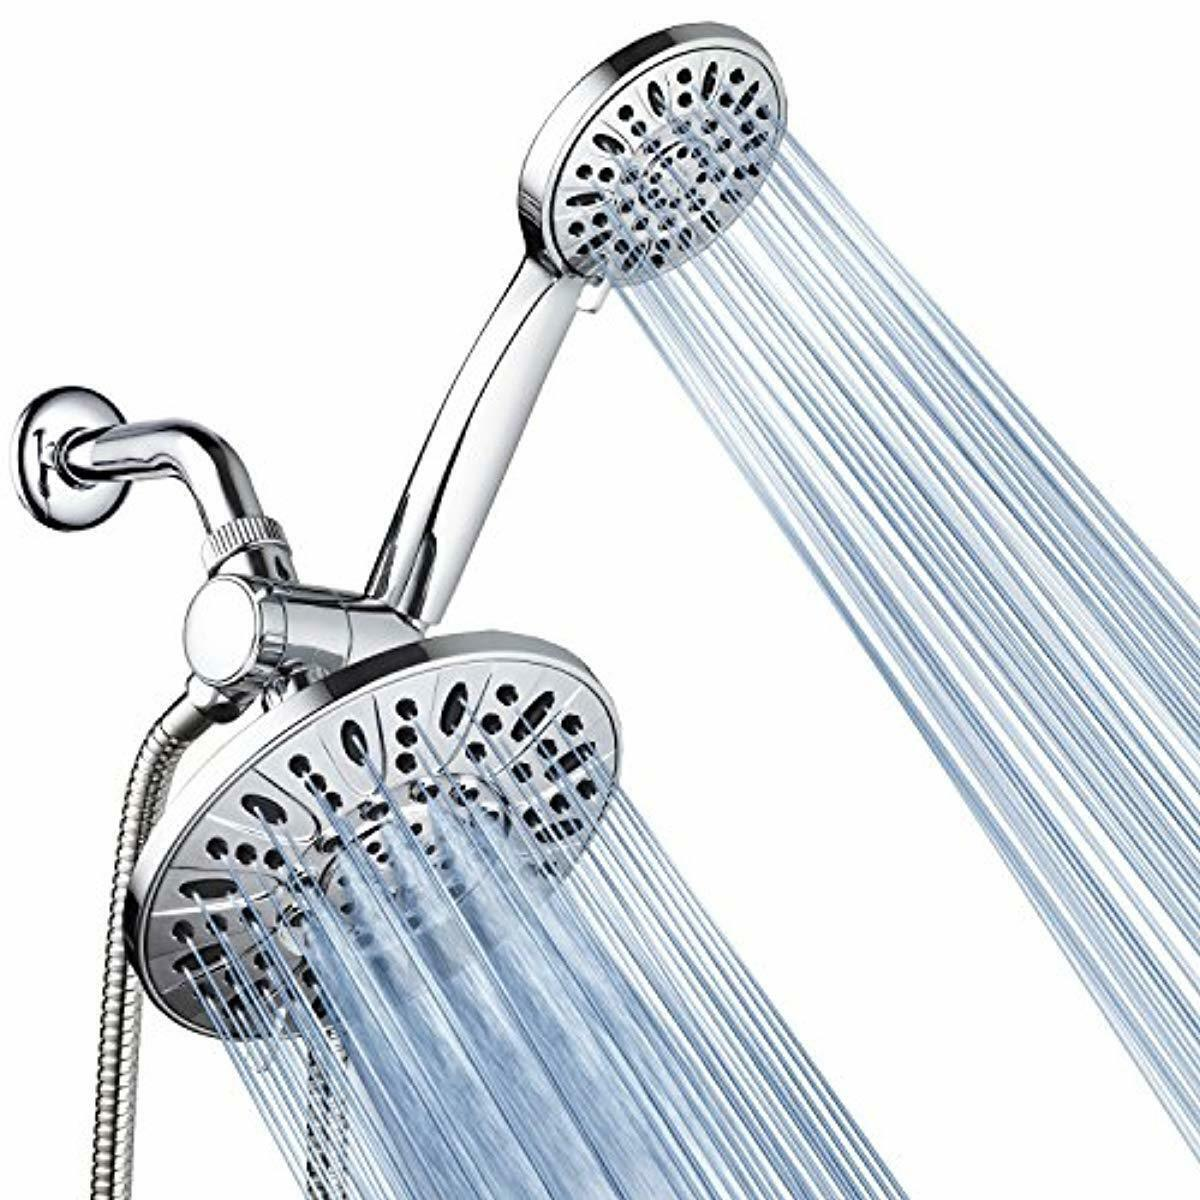 Details About 3 Way Rainfall Combo Luxurious Rain Showerhead With 6 Setting Hand Held Shower